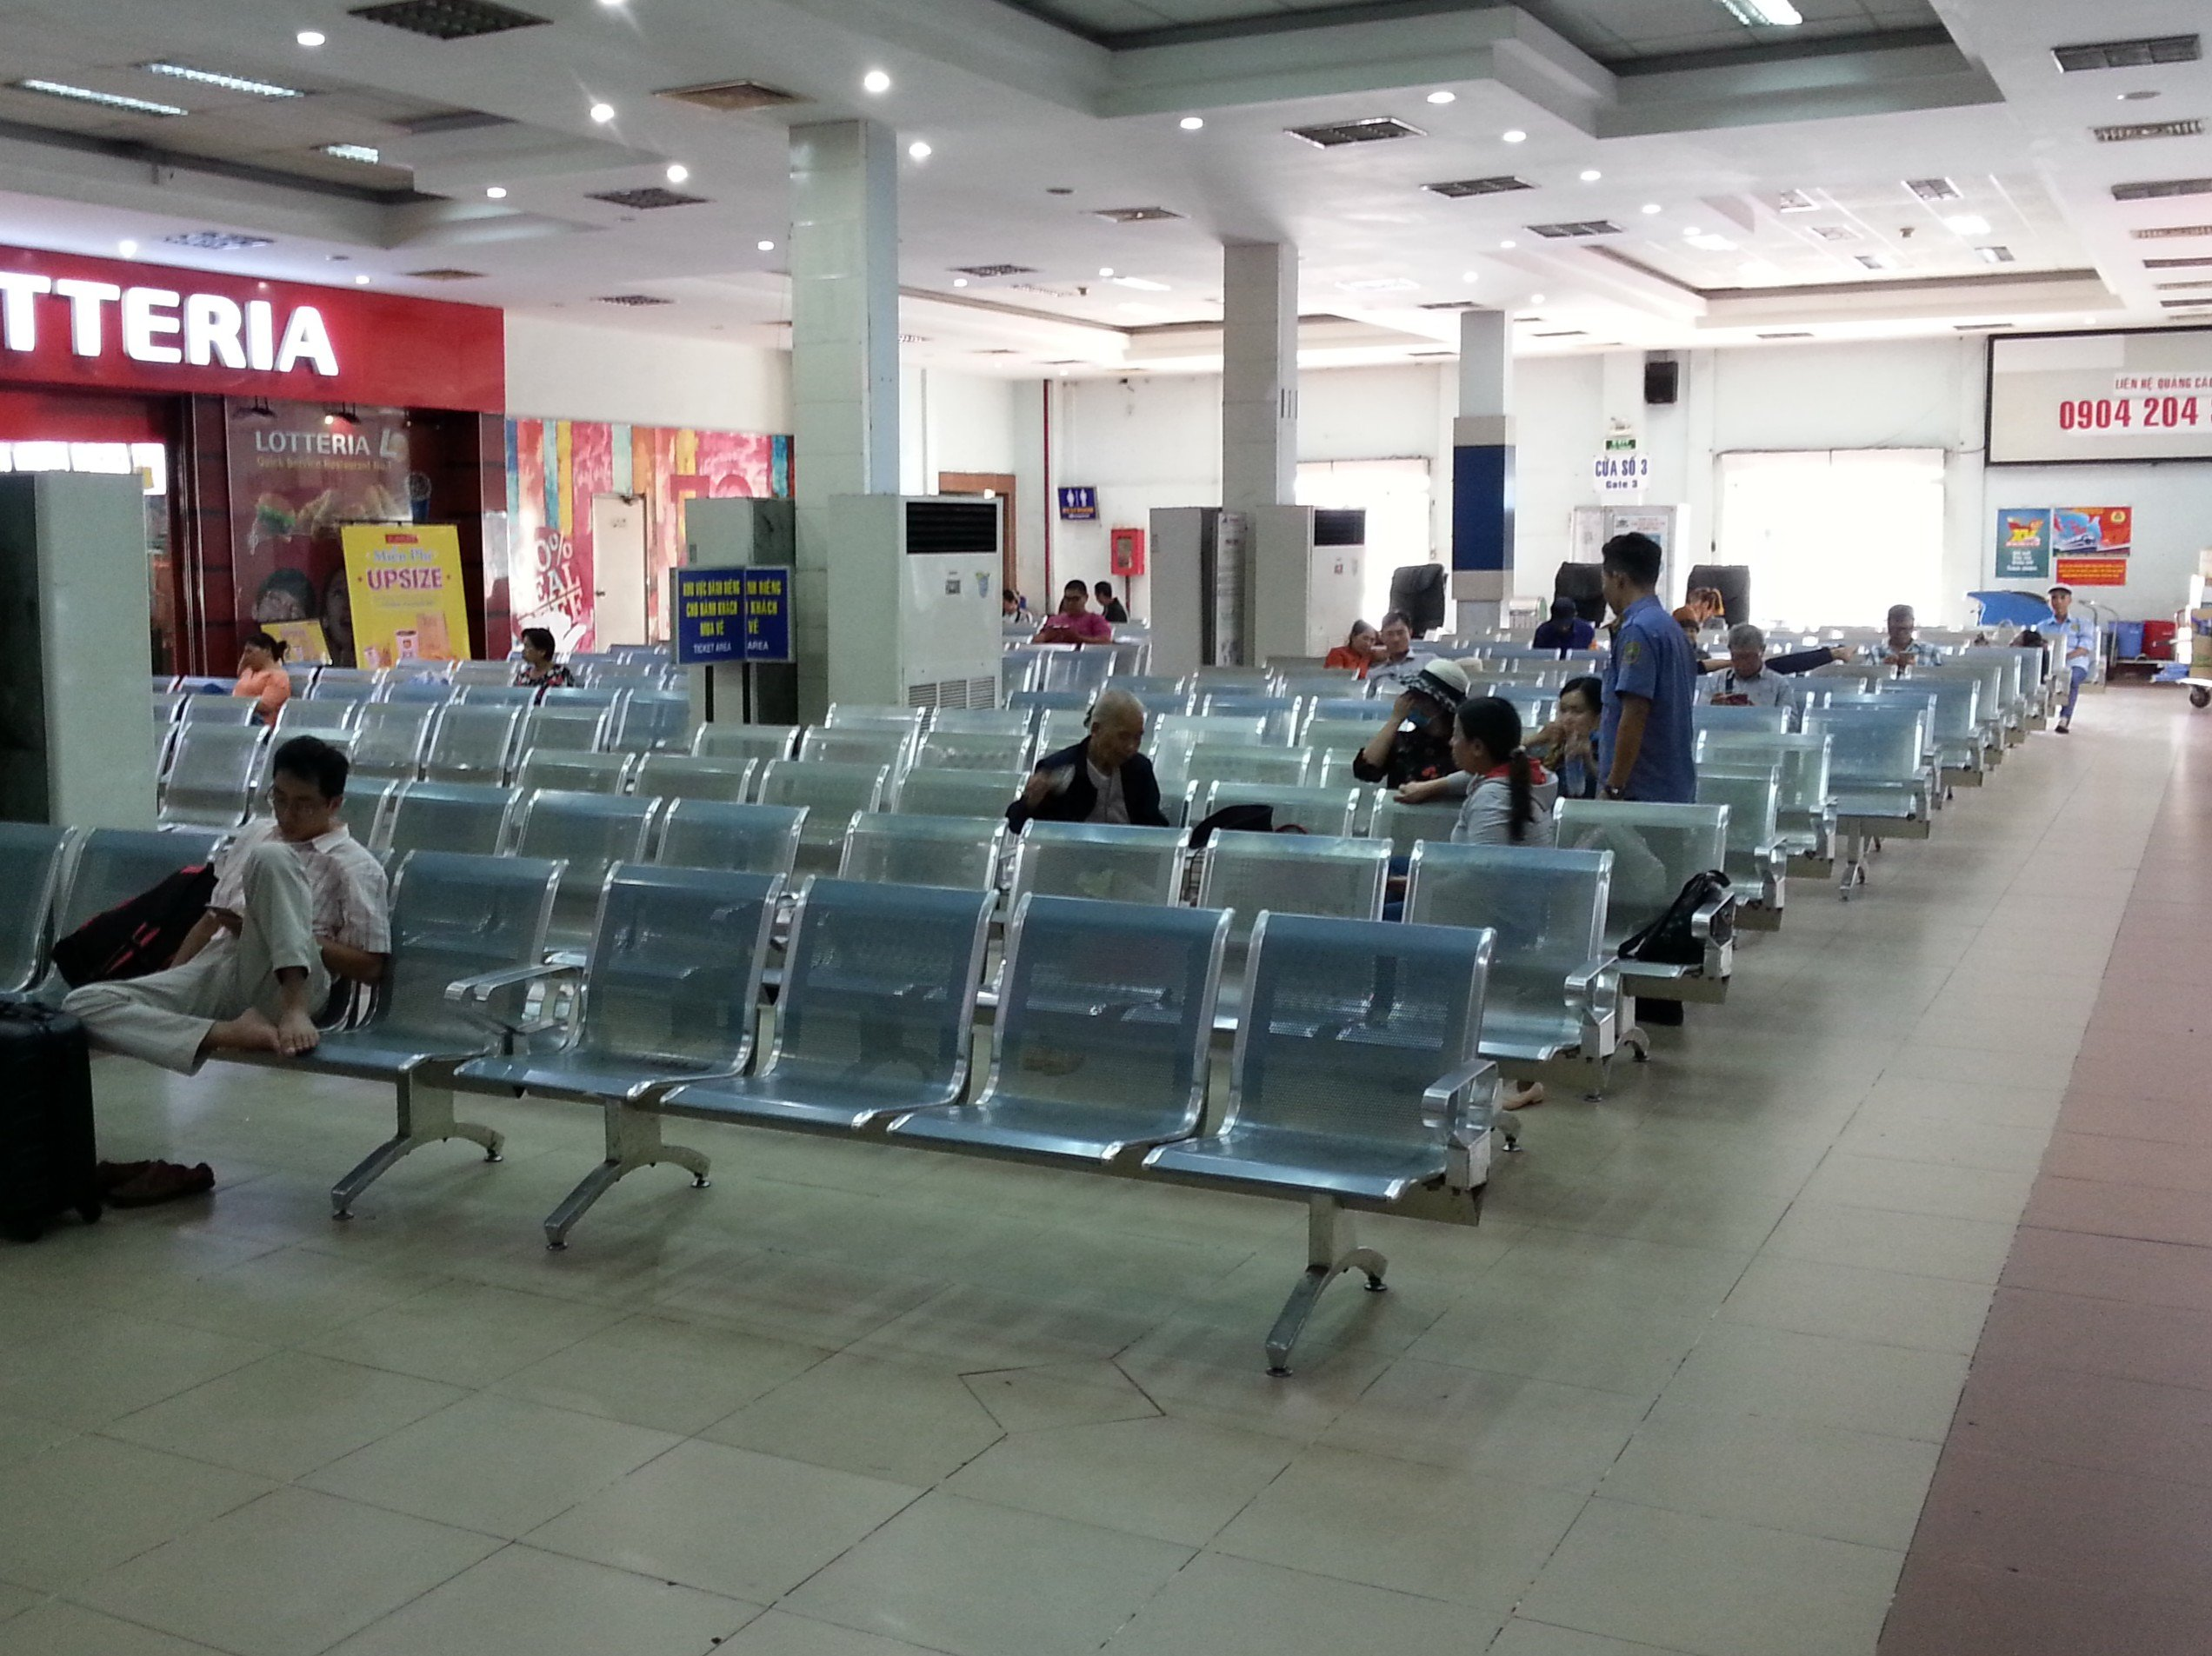 Waiting area at Saigon Railway Station